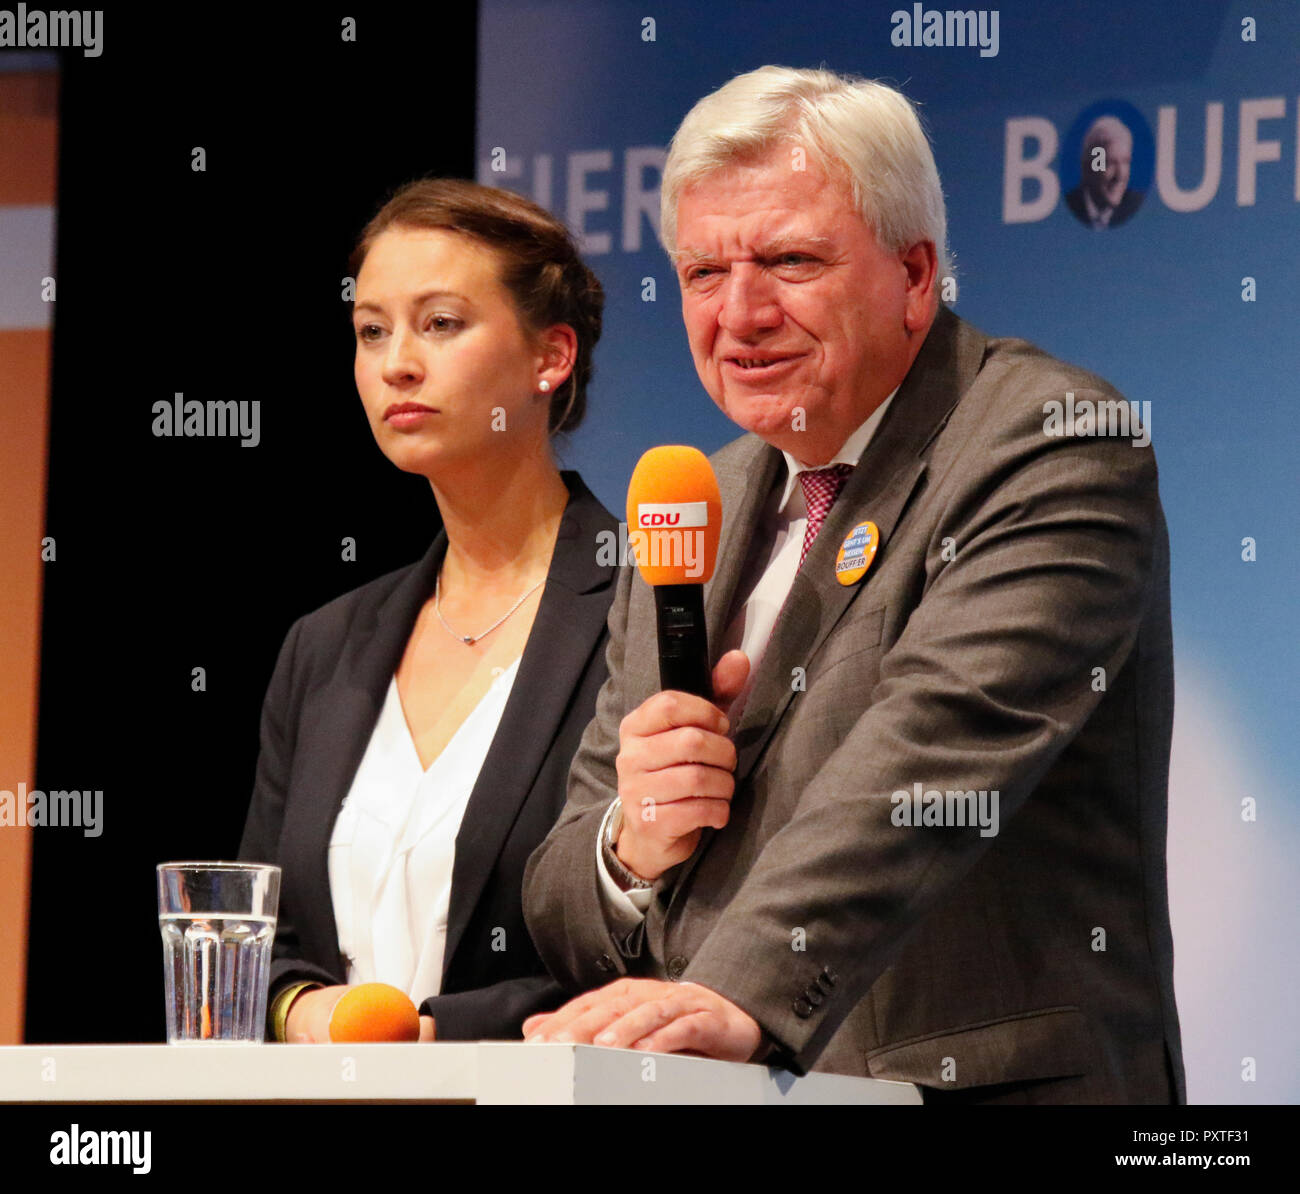 Dieburg, Germany. 23rd Oct, 2018. Volker Bouffier, the Minister President of the German state of Hesse, speaks at the election rally. German Chancellor Angela Merkel attended a political rally of her CDU party in Dieburg ahead of the upcoming state election in the German state of Hesse. With less than a week to go to the election, the CDU is still leading the polls, but gas lost more than 10% compared to the last election. Credit: Michael Debets/Pacific Press/Alamy Live News - Stock Image